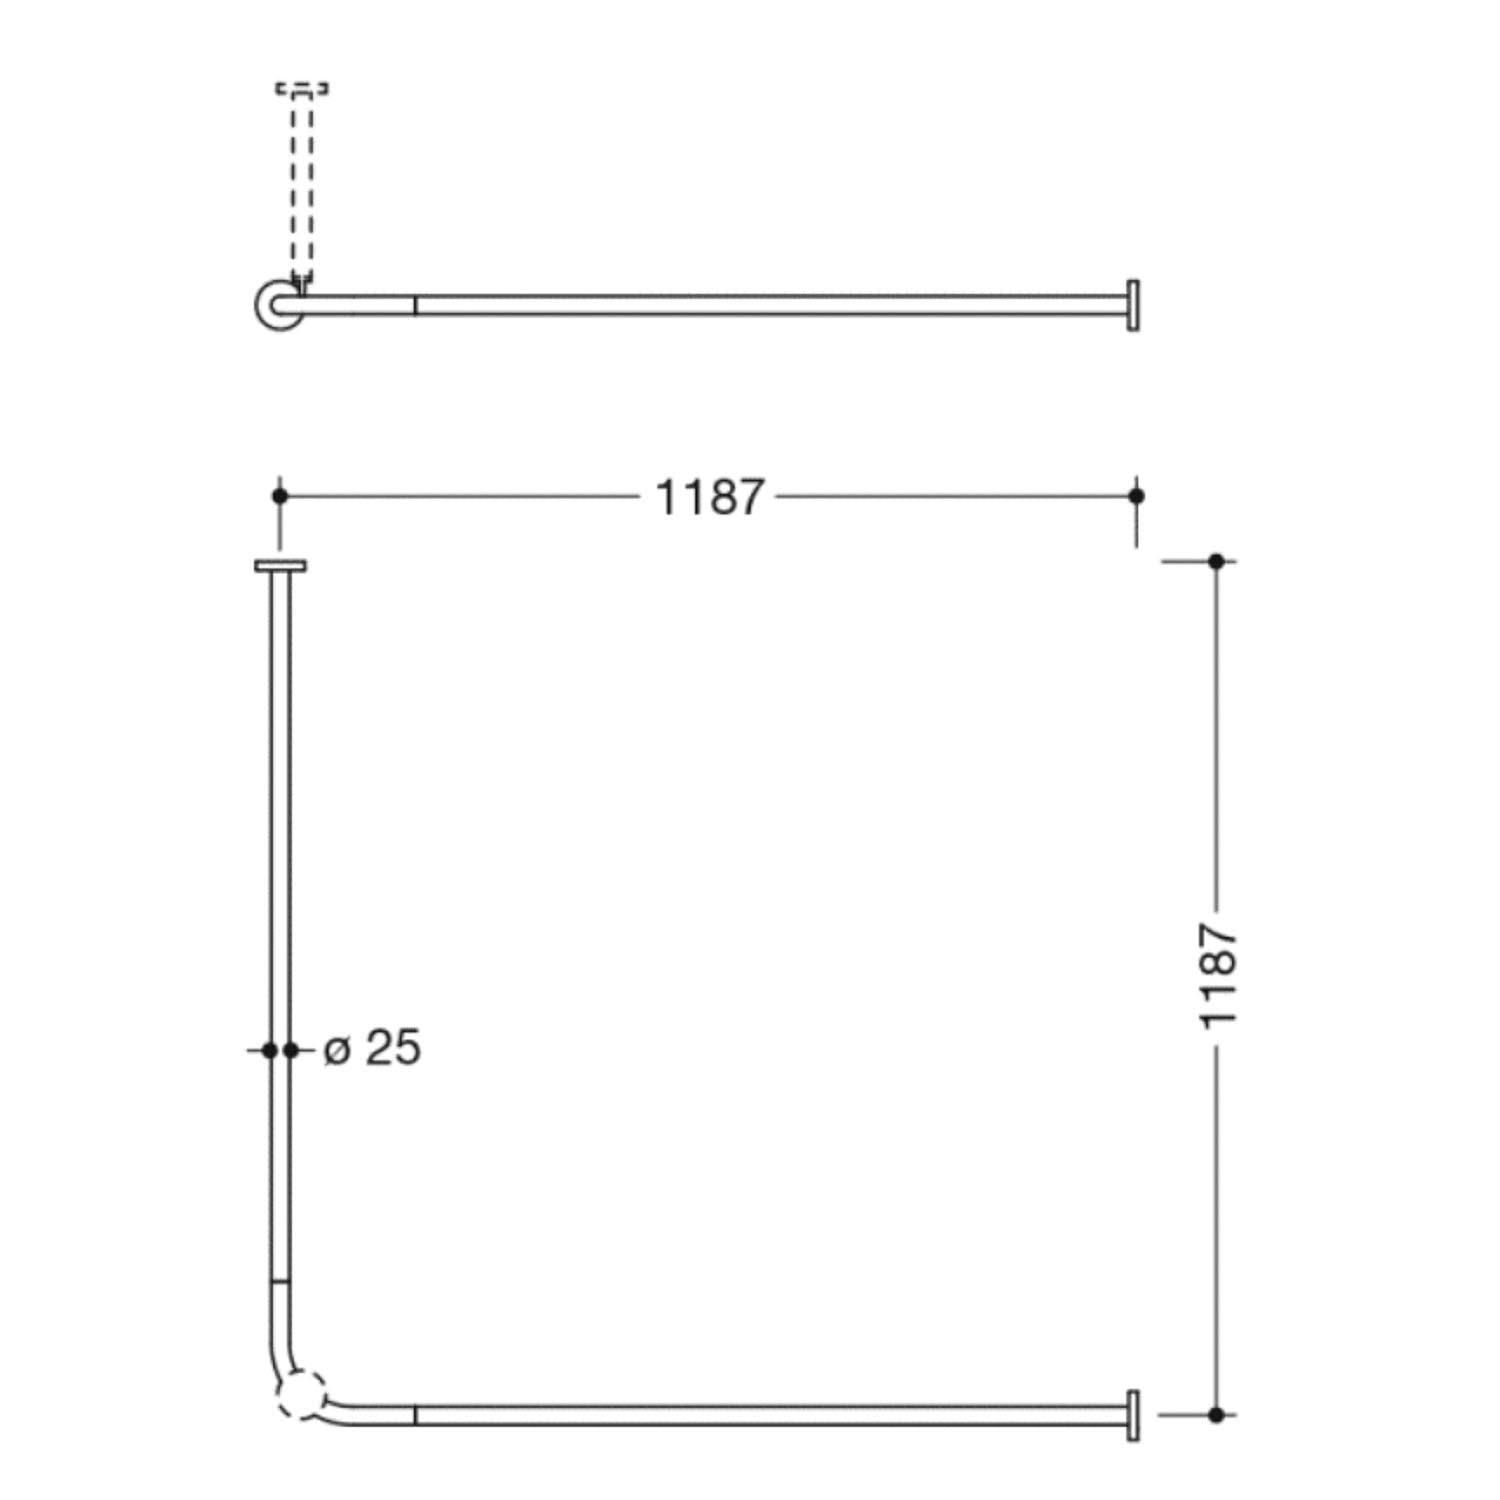 1200mm L-Shaped Shower Curtain Rail with a satin steel finish dimensional drawing